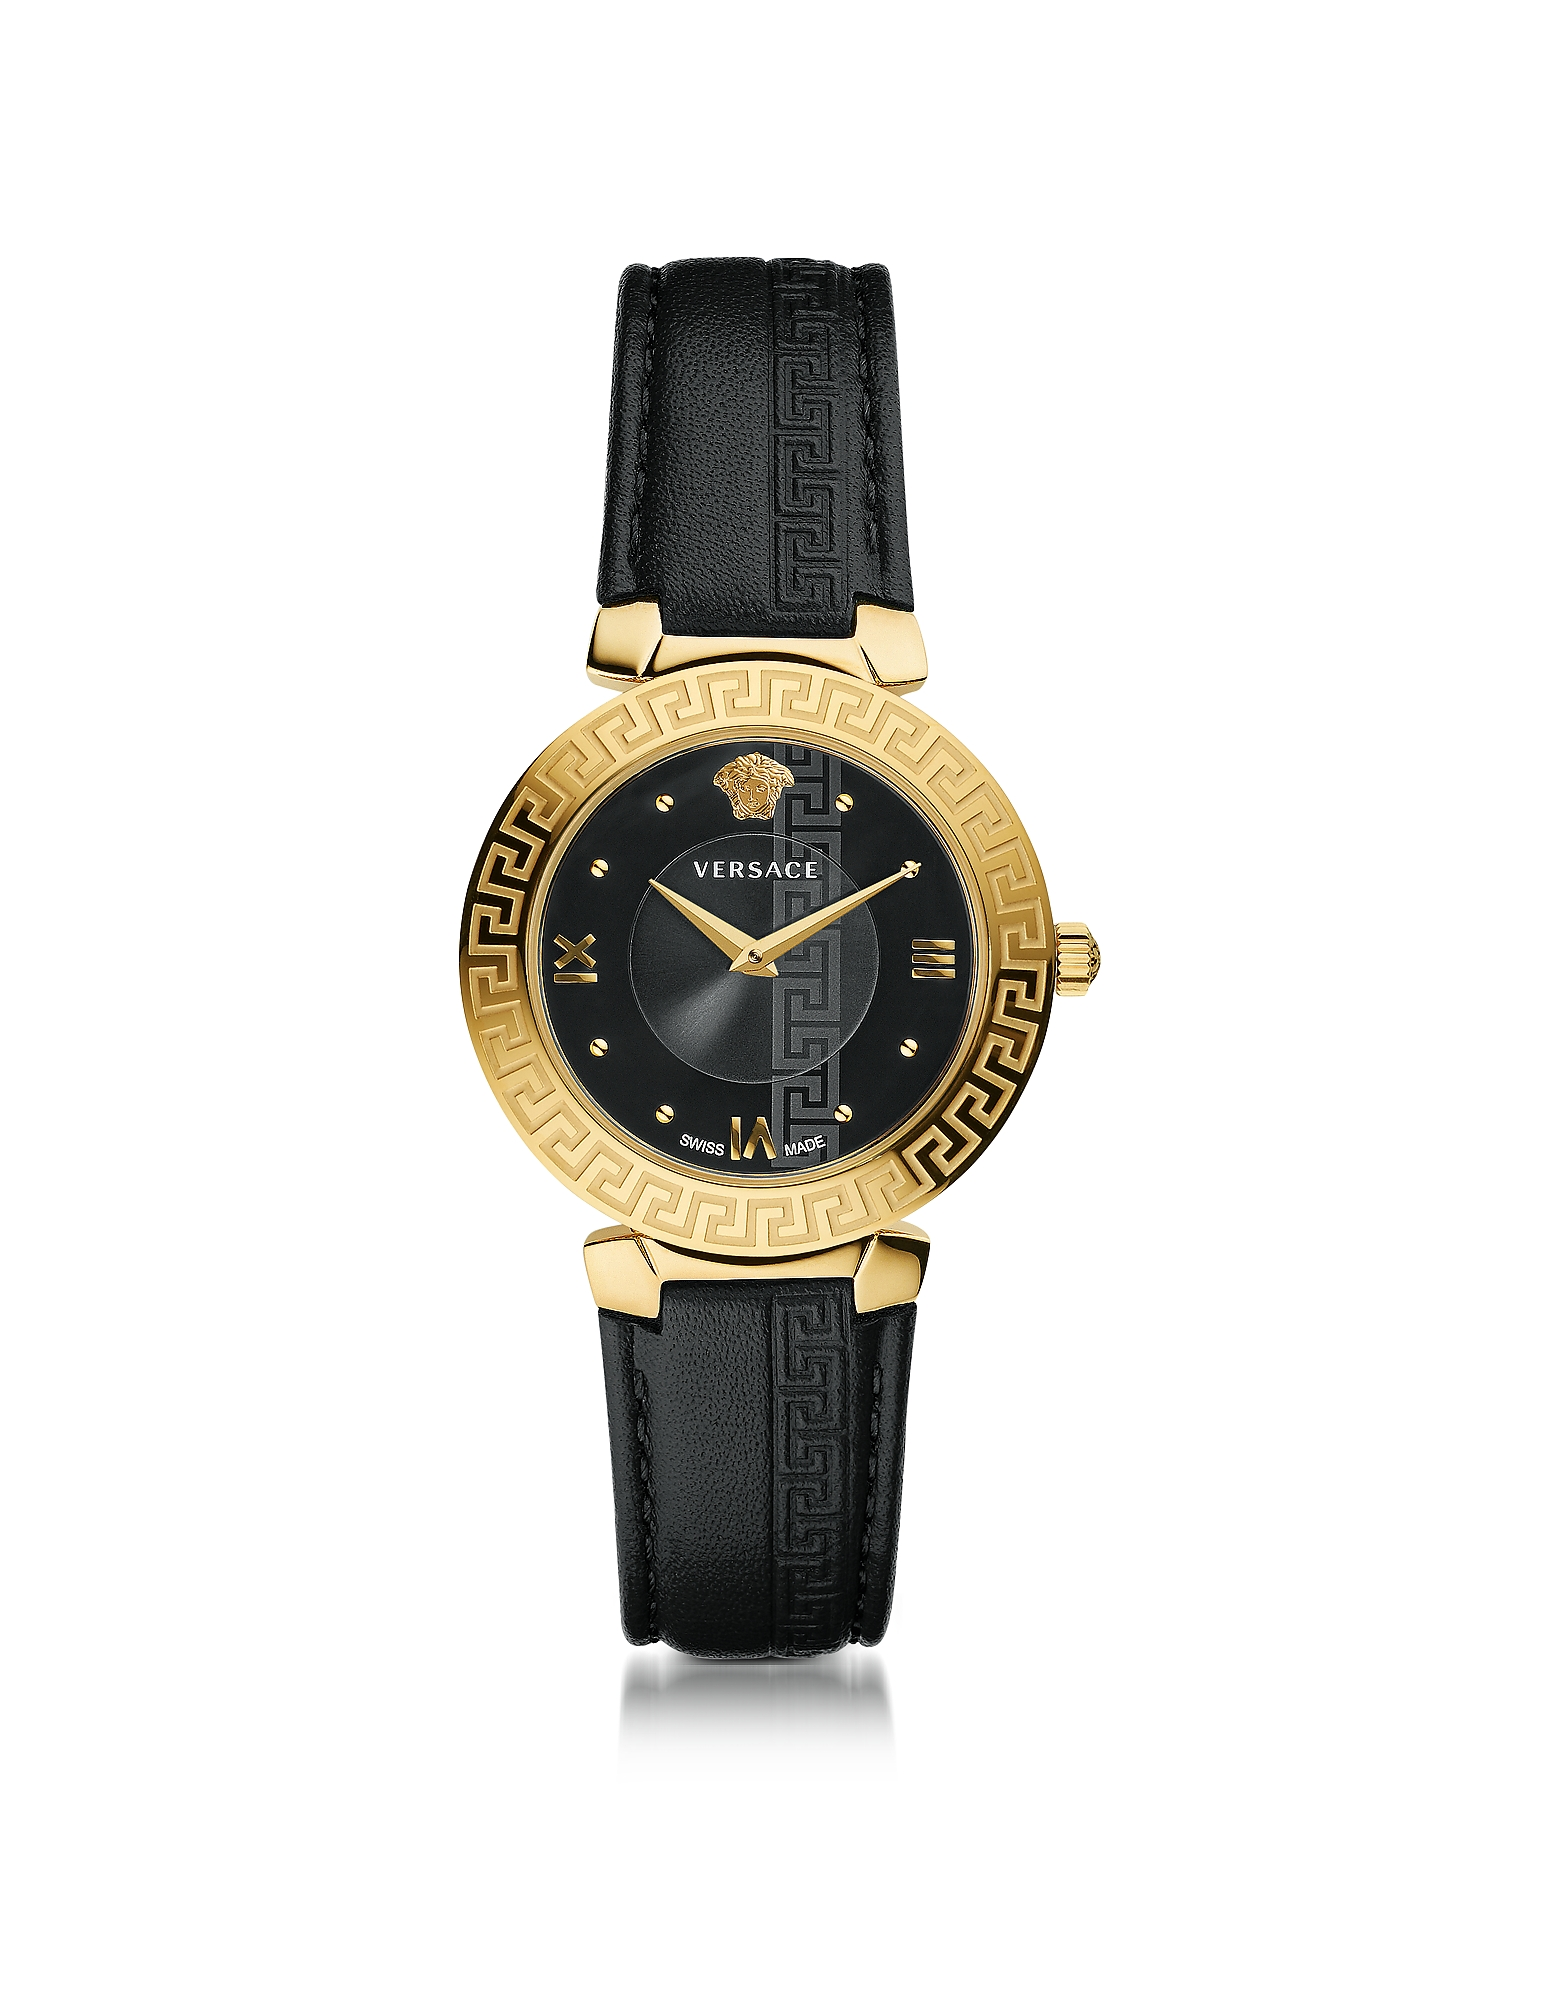 Versace Women's Watches, Daphnis Black and PVD Gold Plated Women's Watch w/Greek Engraving